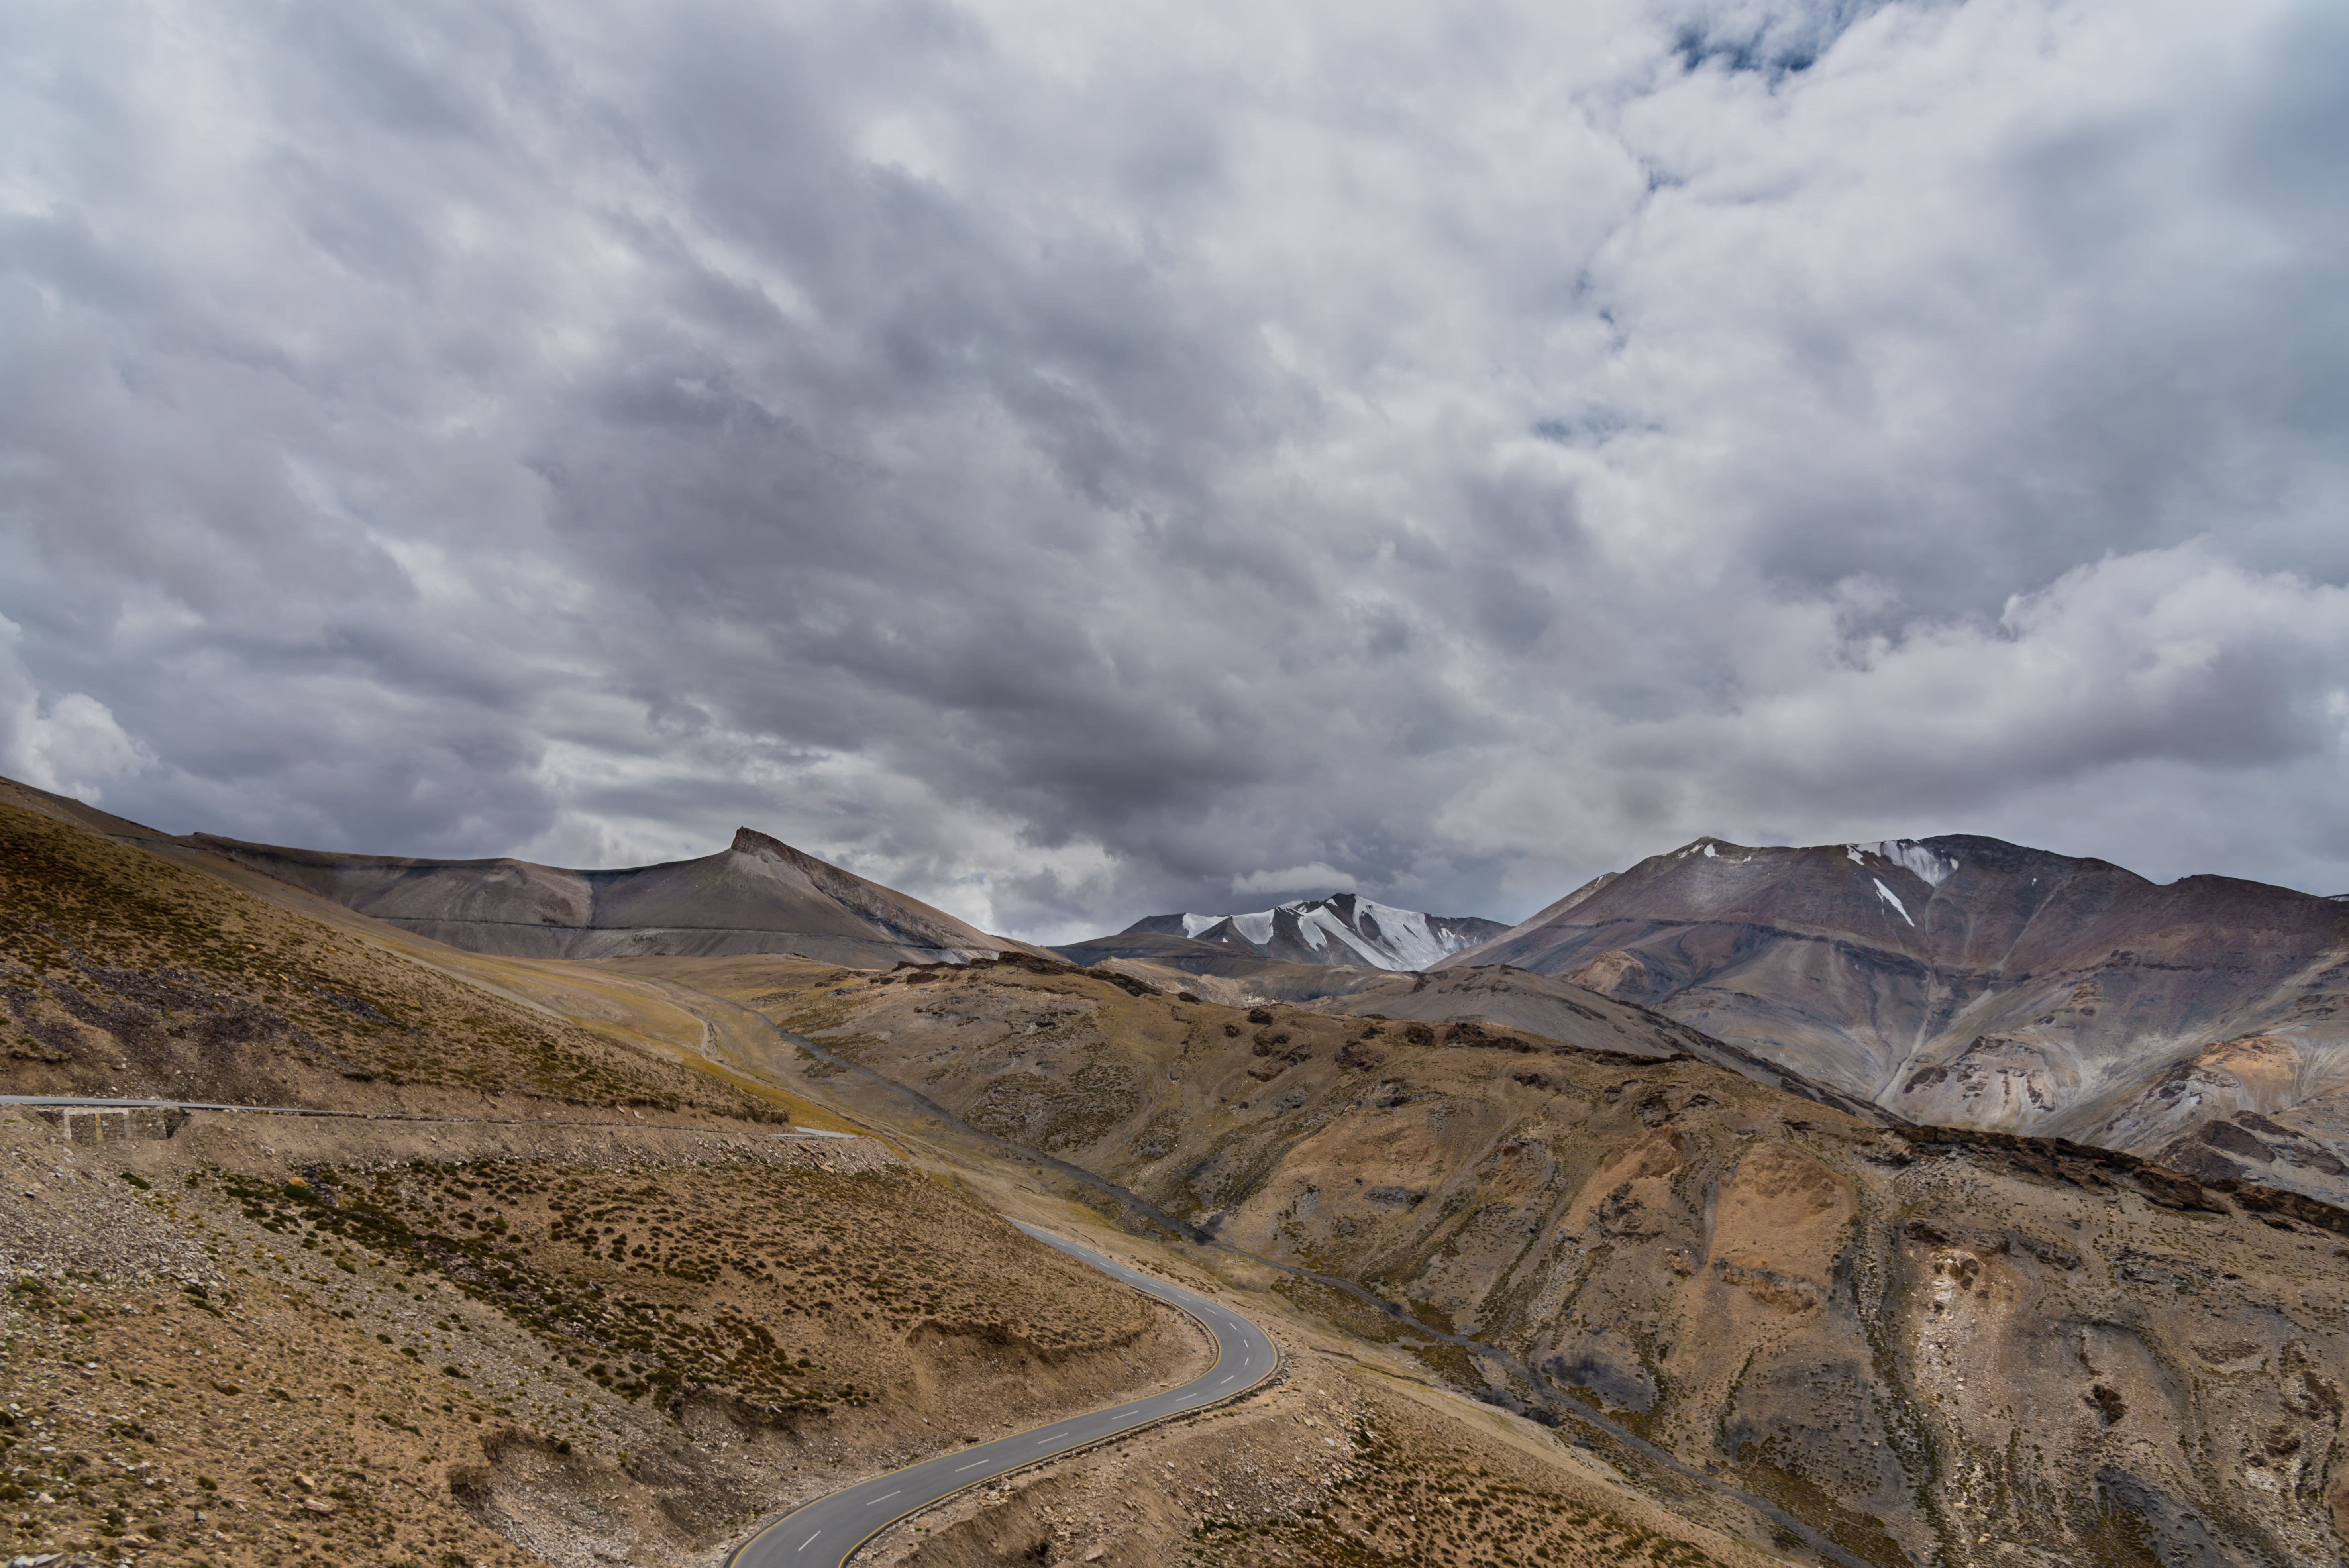 Picturesque Hillscapes Of Ladakh Region